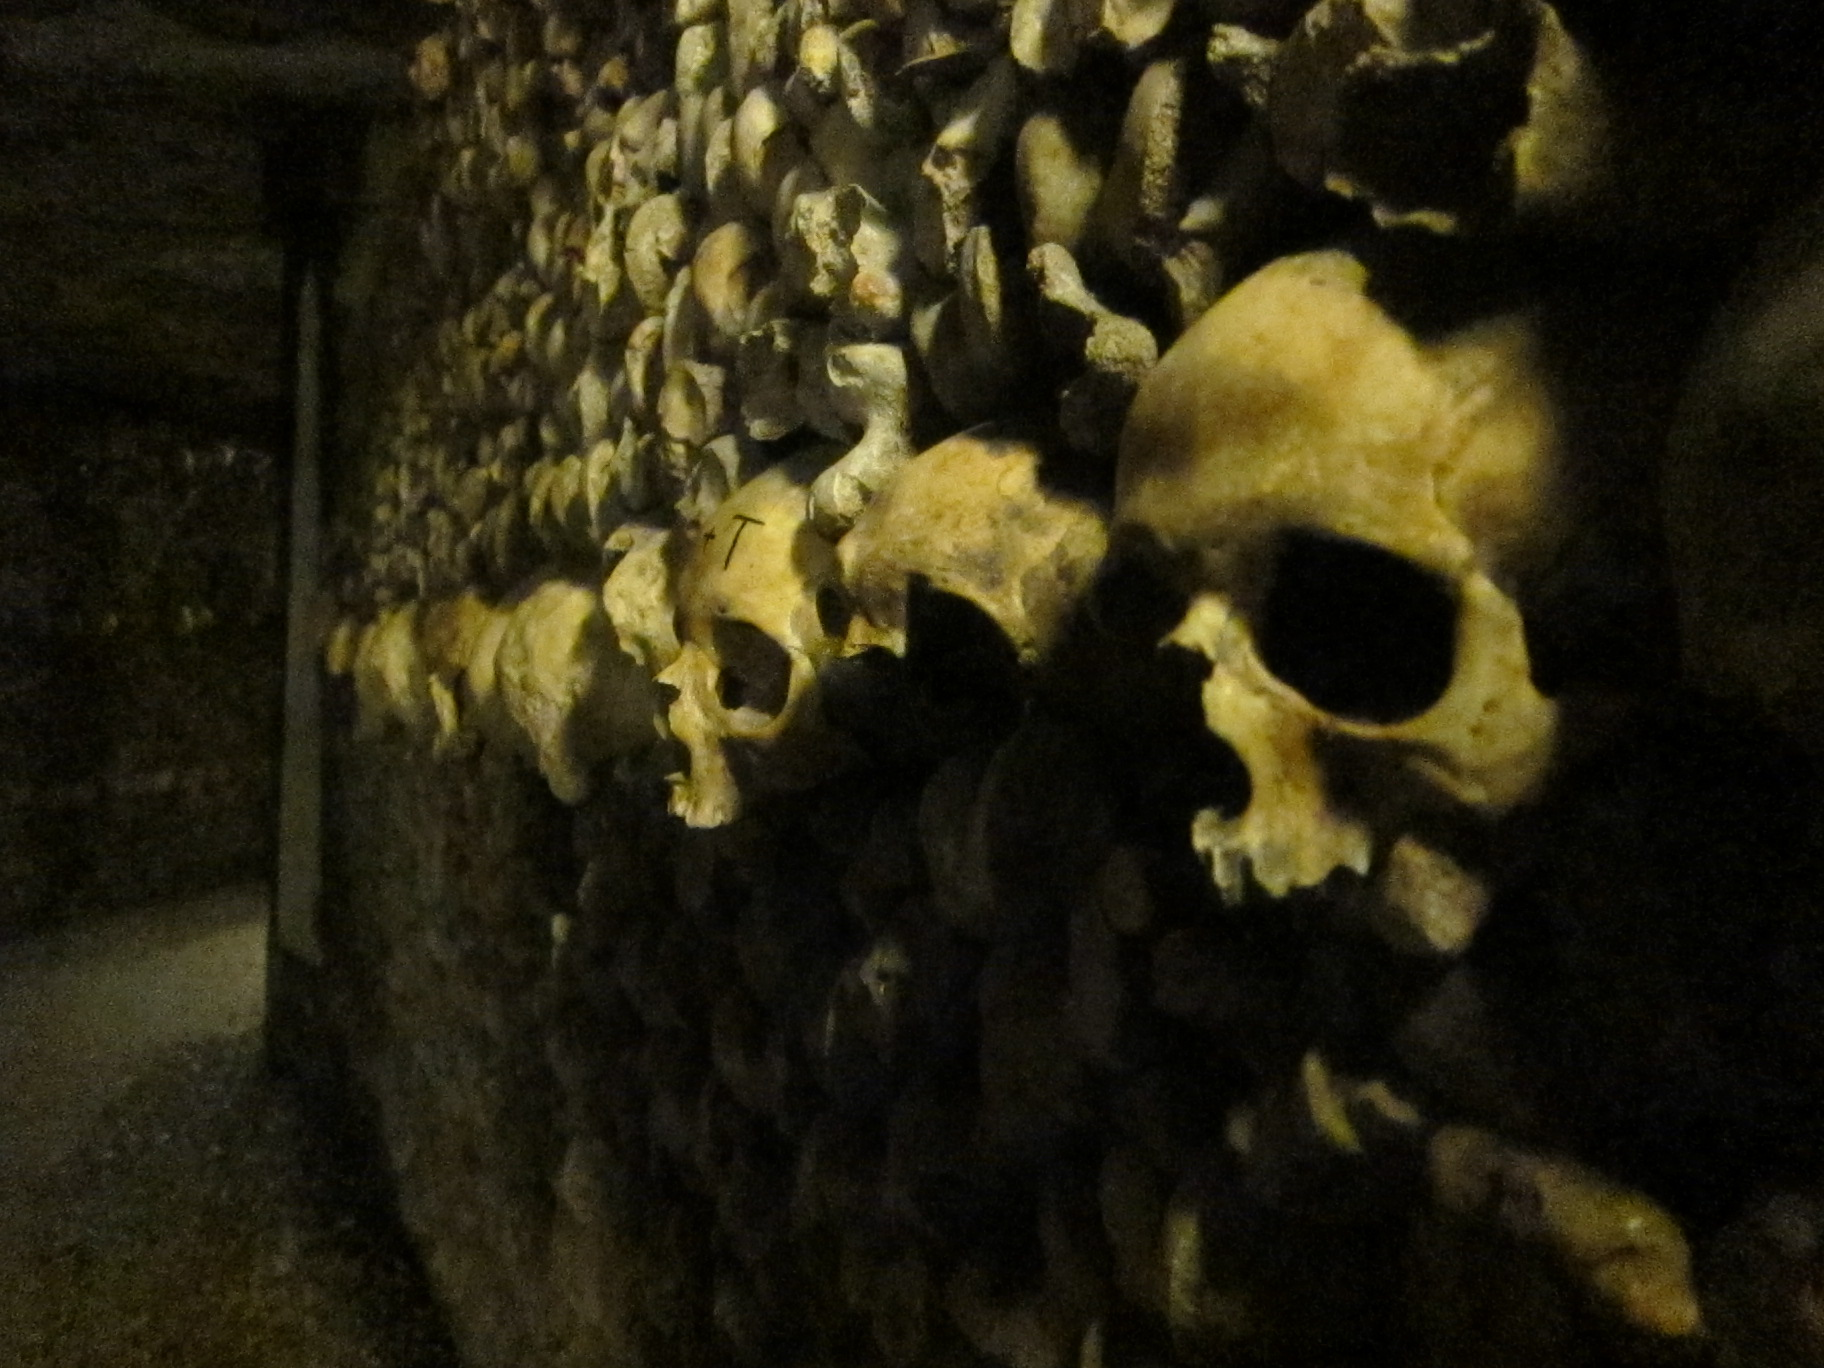 Remains - Catacombs, Skull, Skulls, Remains, Kill, HQ Photo